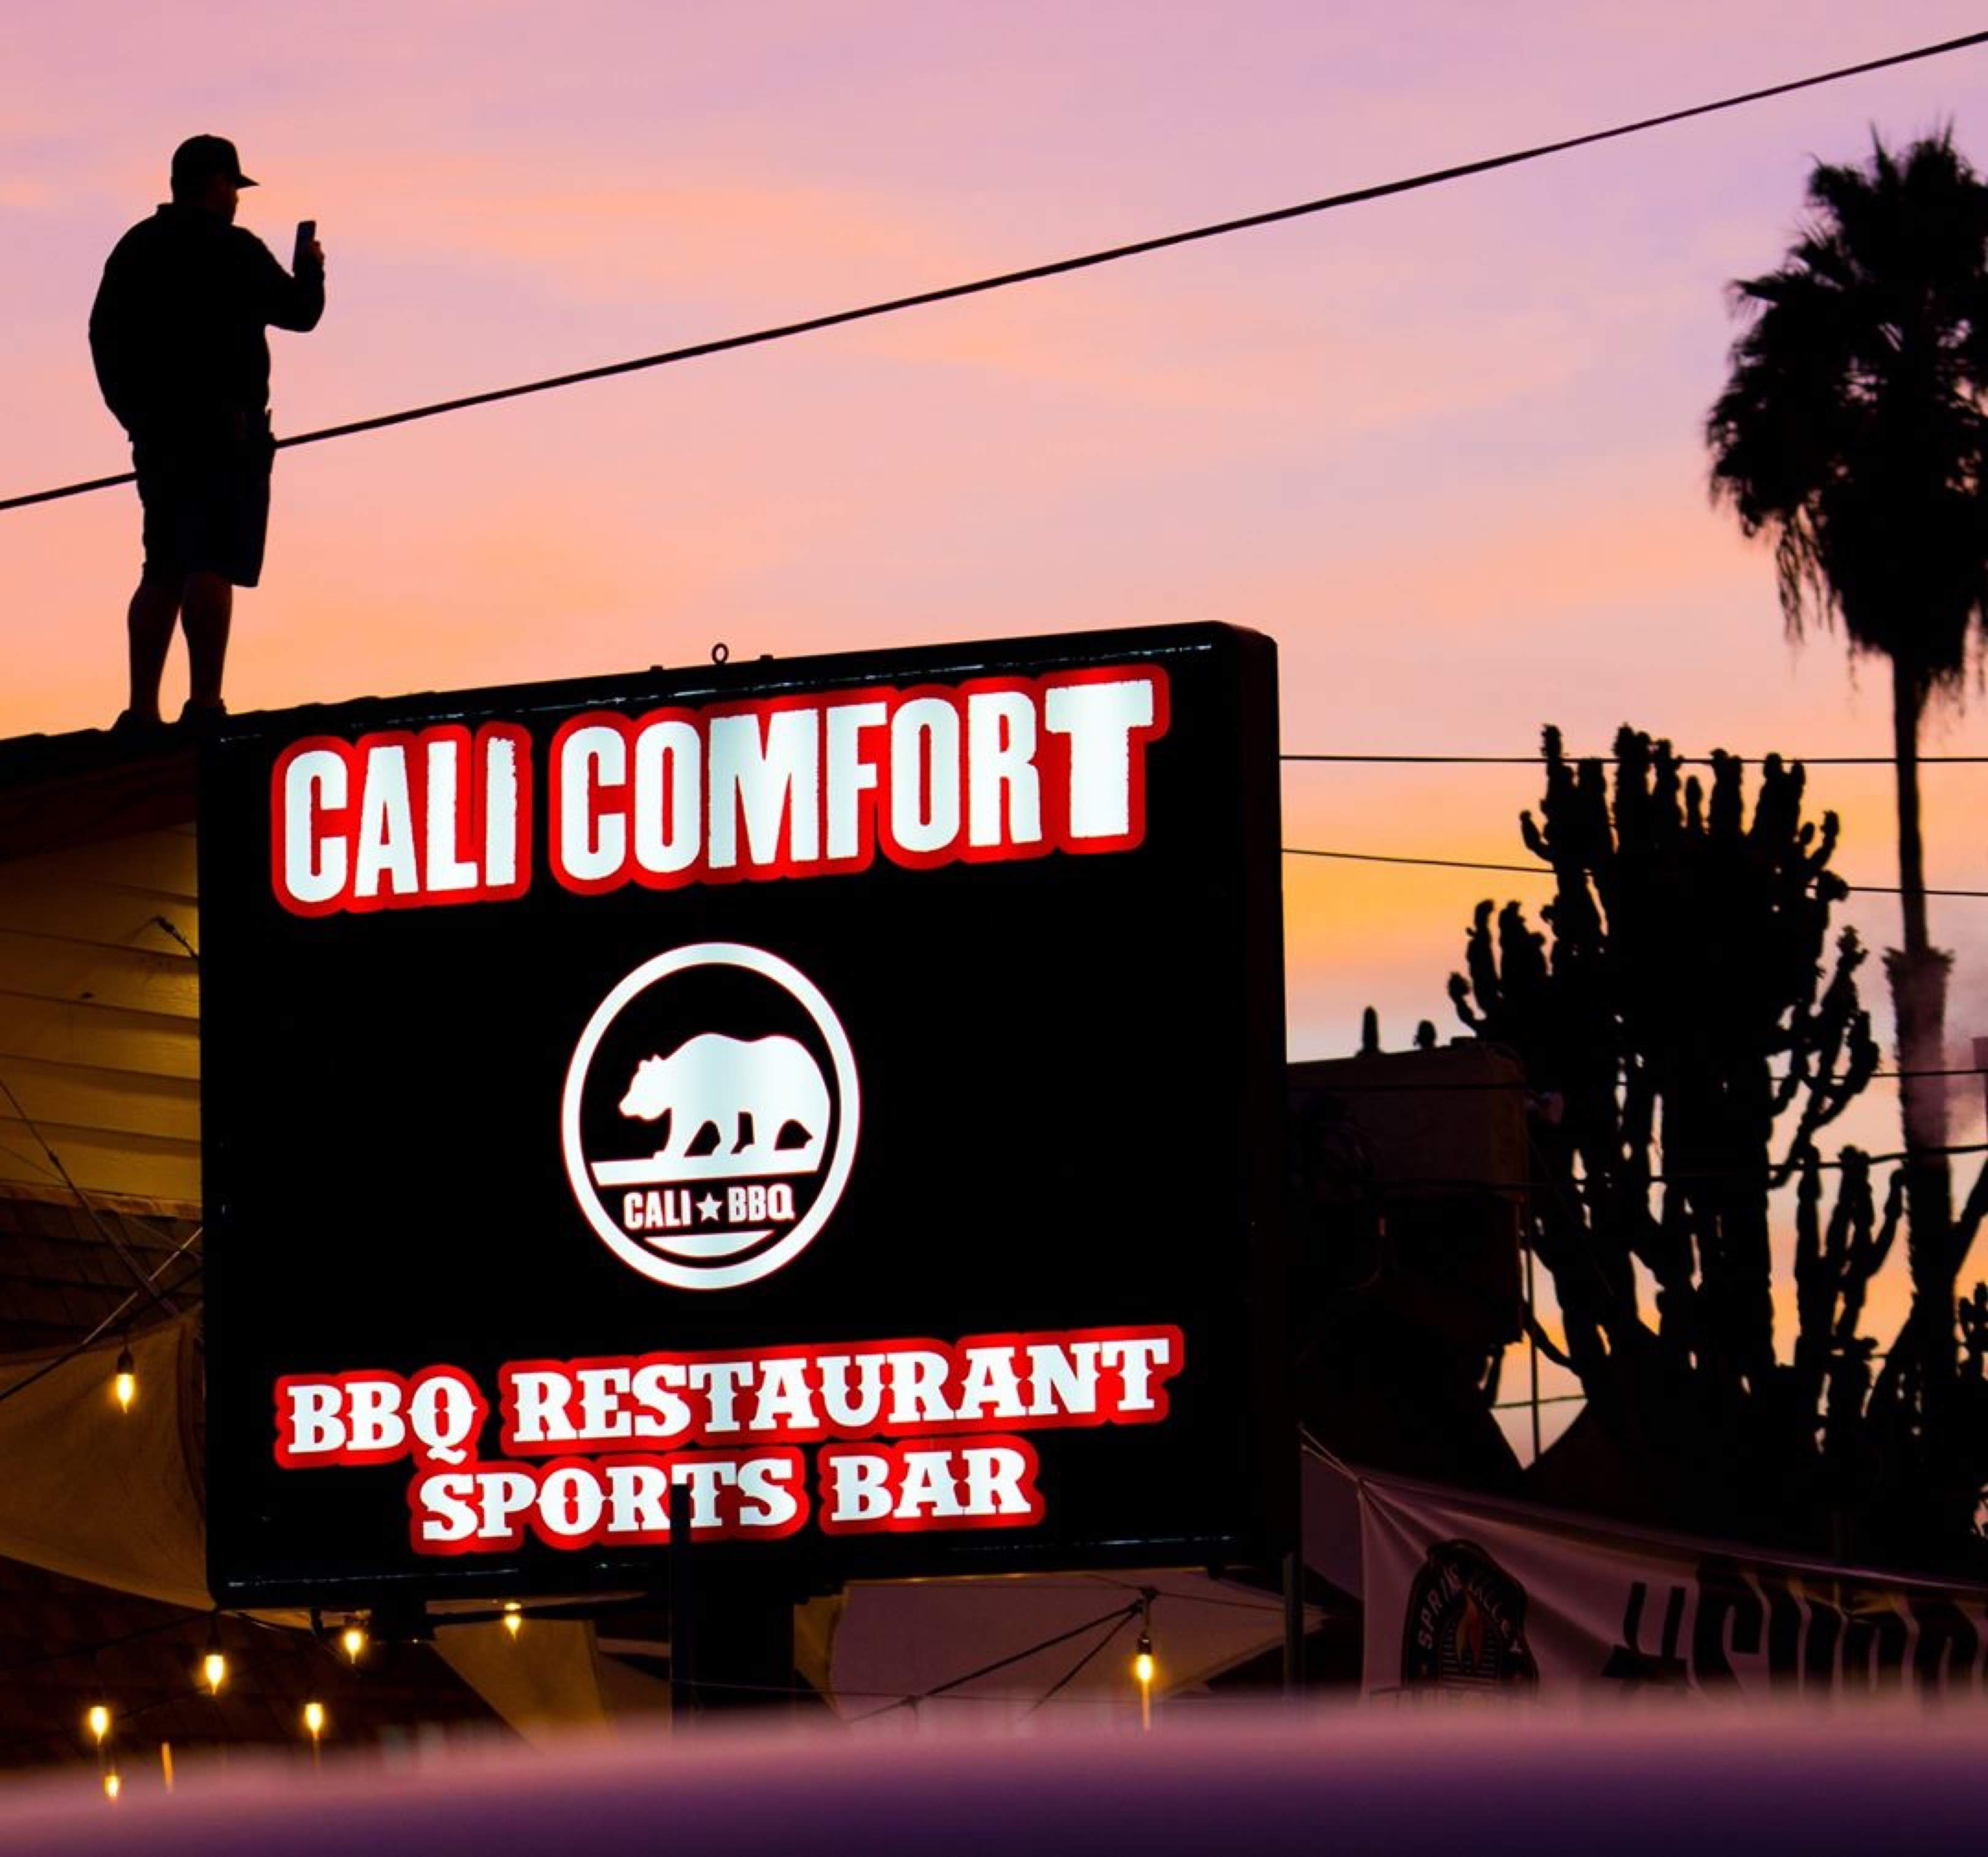 Cali comfort bbq san diego delivery